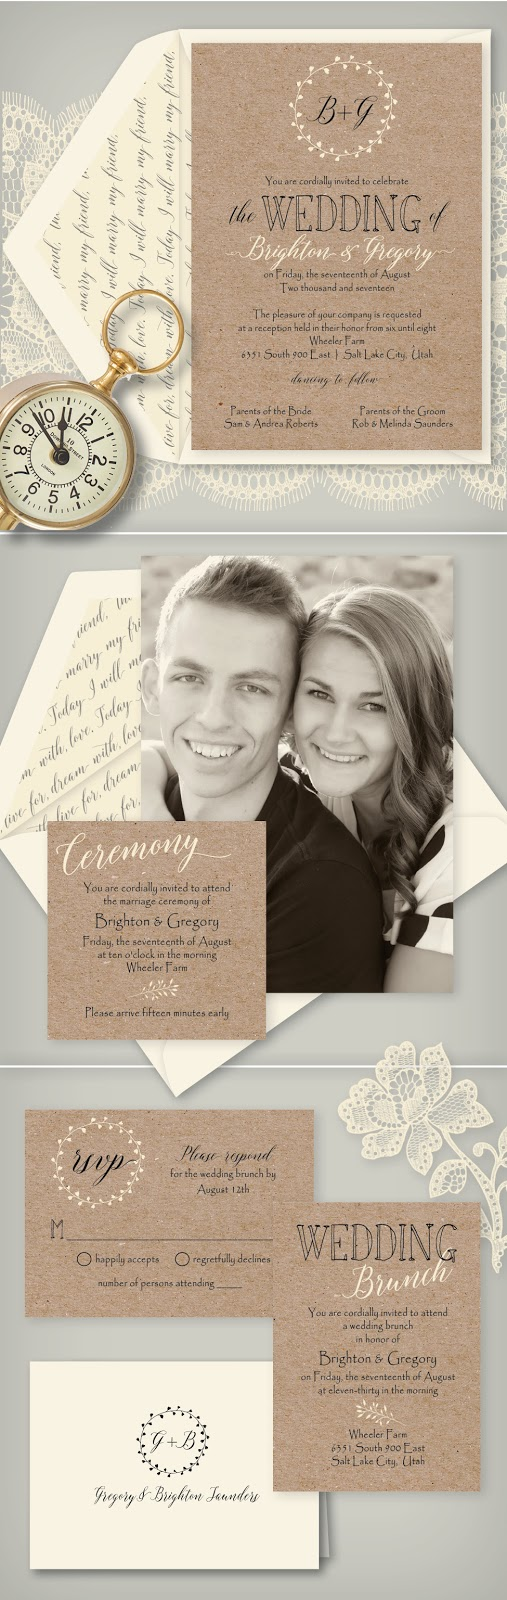 Wedding invitation blog its easy to see why were in love with this charming rustic photo wedding invitation monicamarmolfo Images